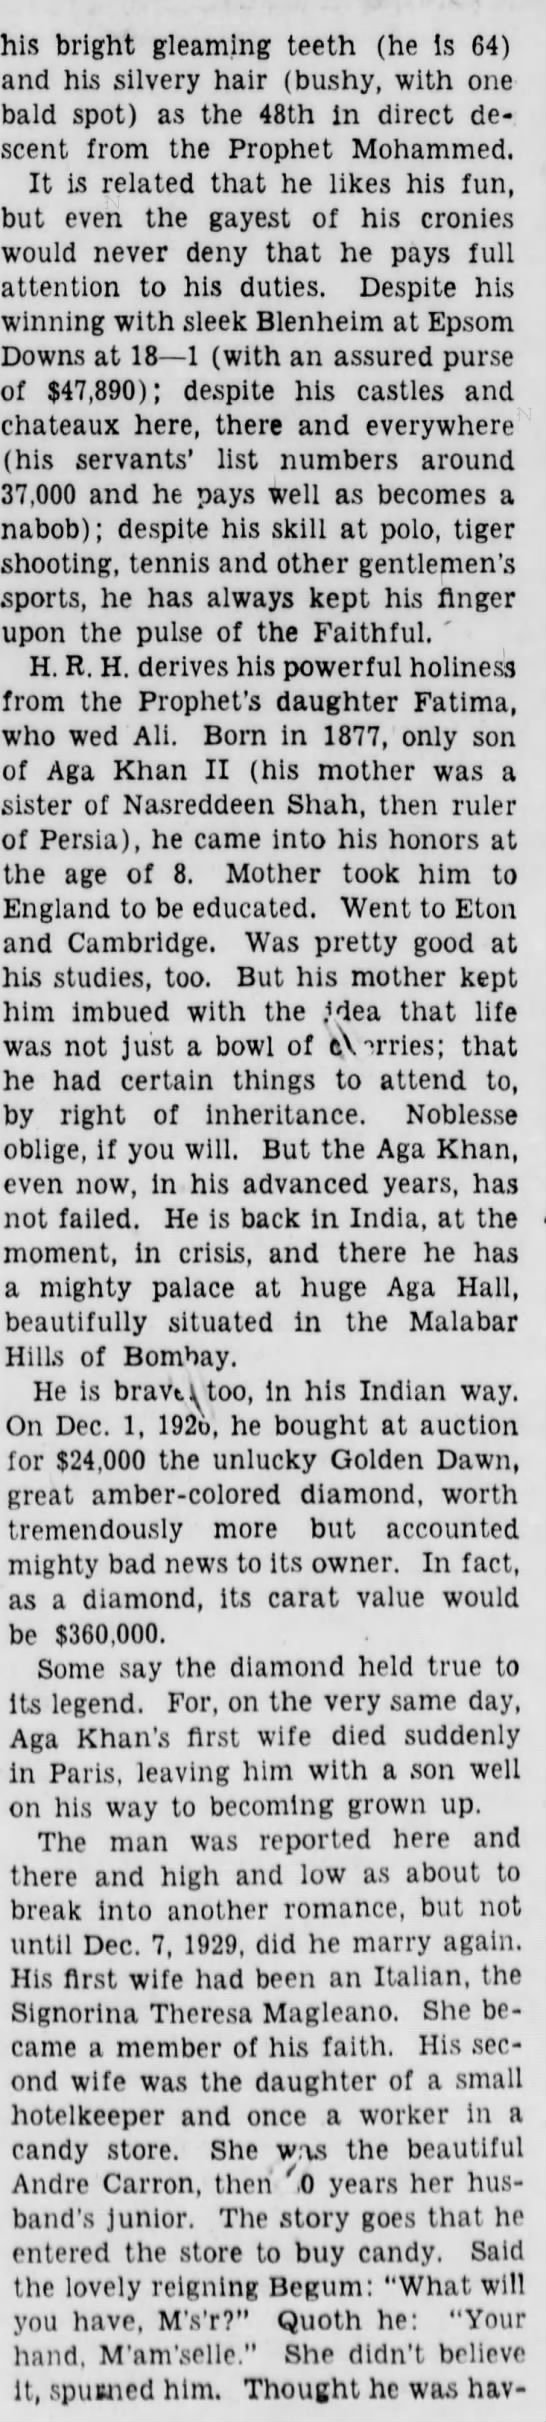 aga2a Old Print Article: Aga Khan Worth His Weight In Gold, Brooklyn Daily Eagle (1941)